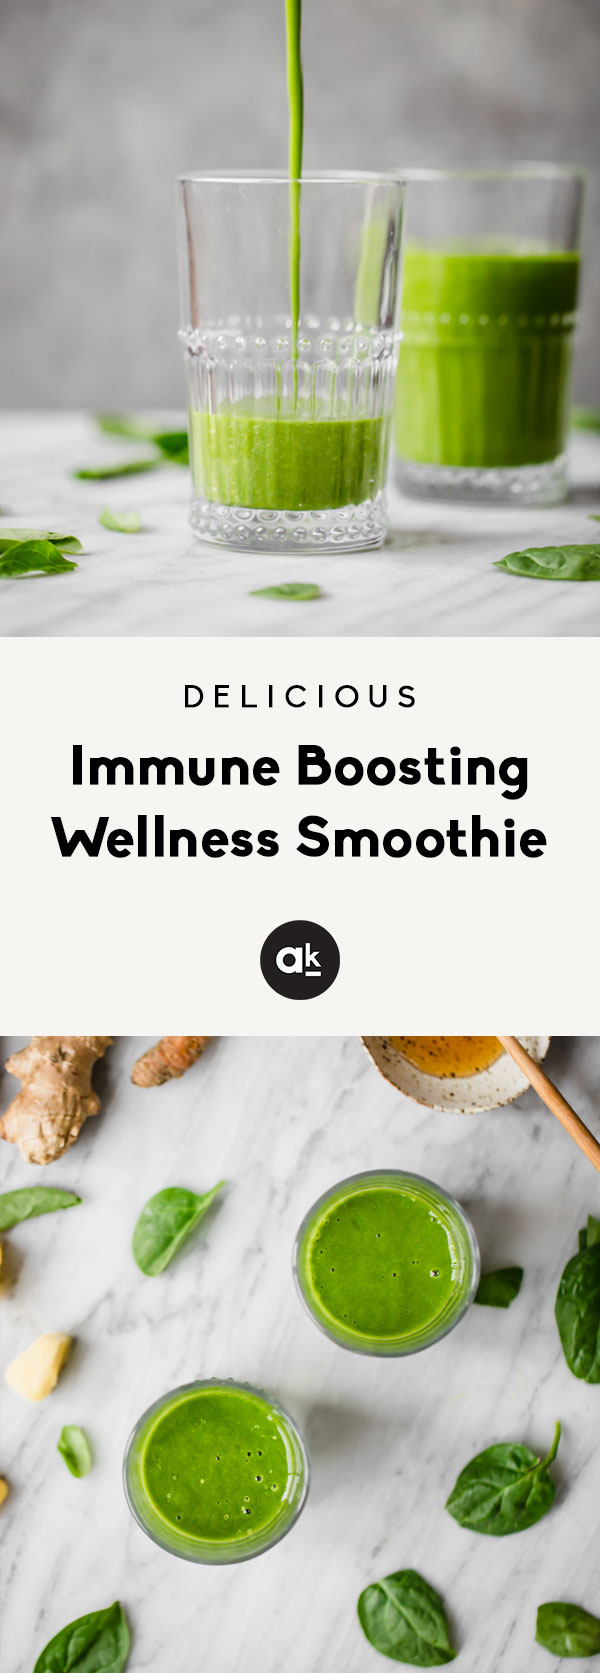 Immune boosting wellness smoothie packed with nourishing ingredients: fresh ginger, turmeric root, spinach, raw or manuka honey, pineapple, banana and black pepper. Sounds crazy, but this smoothie is absolutely delicious, great for digestion and a boost for your immune system!